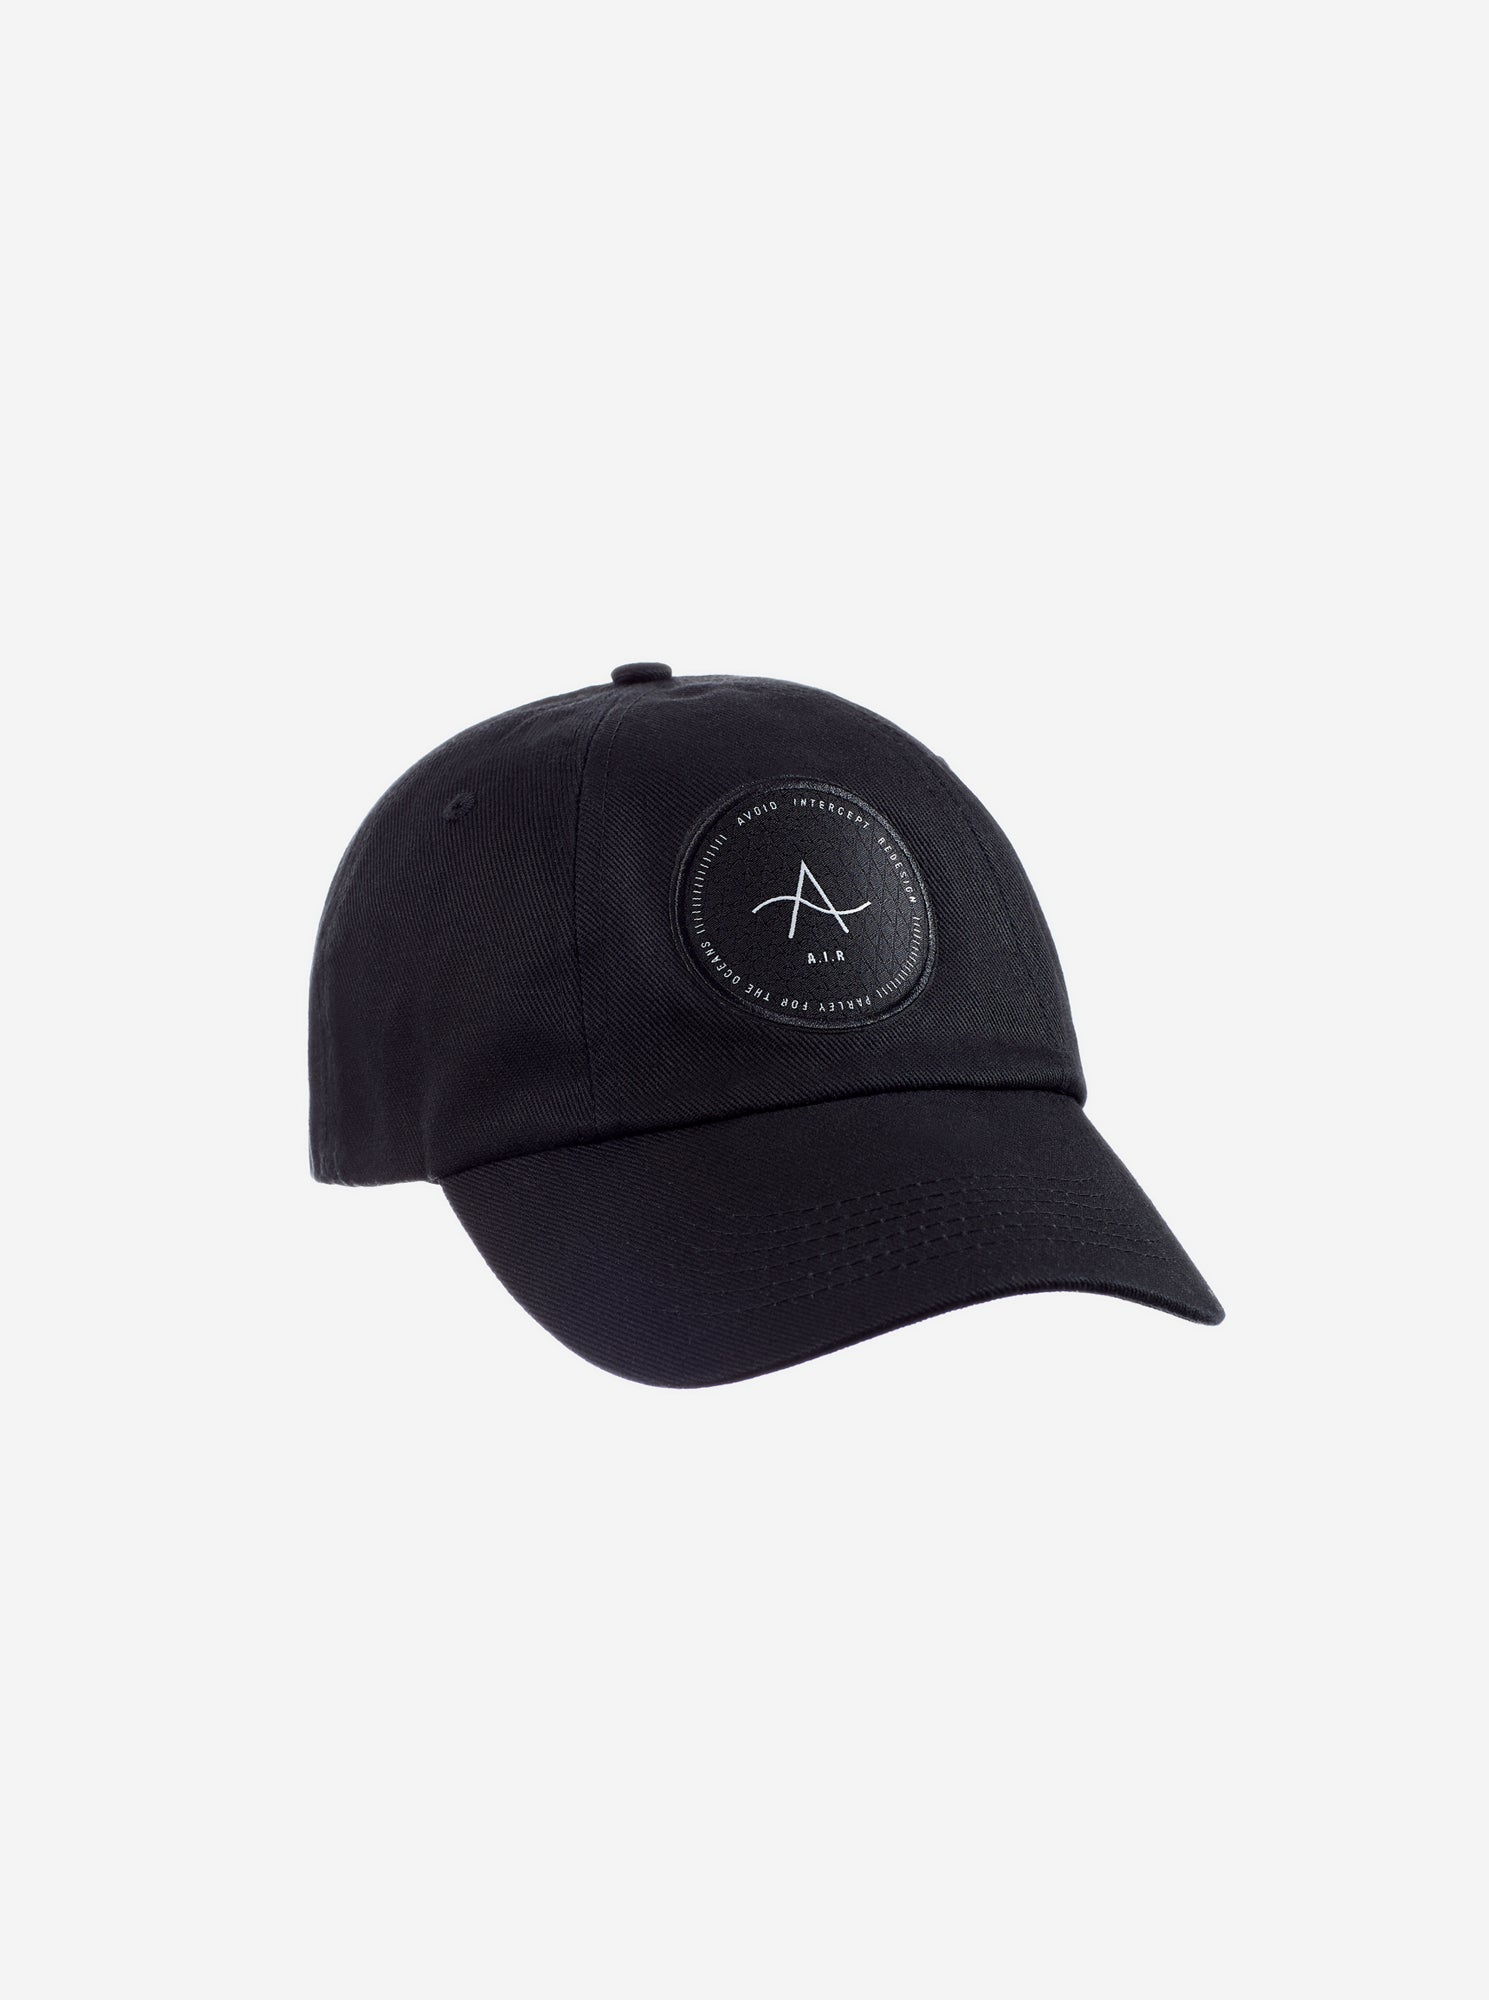 Parley Adjustable Cap